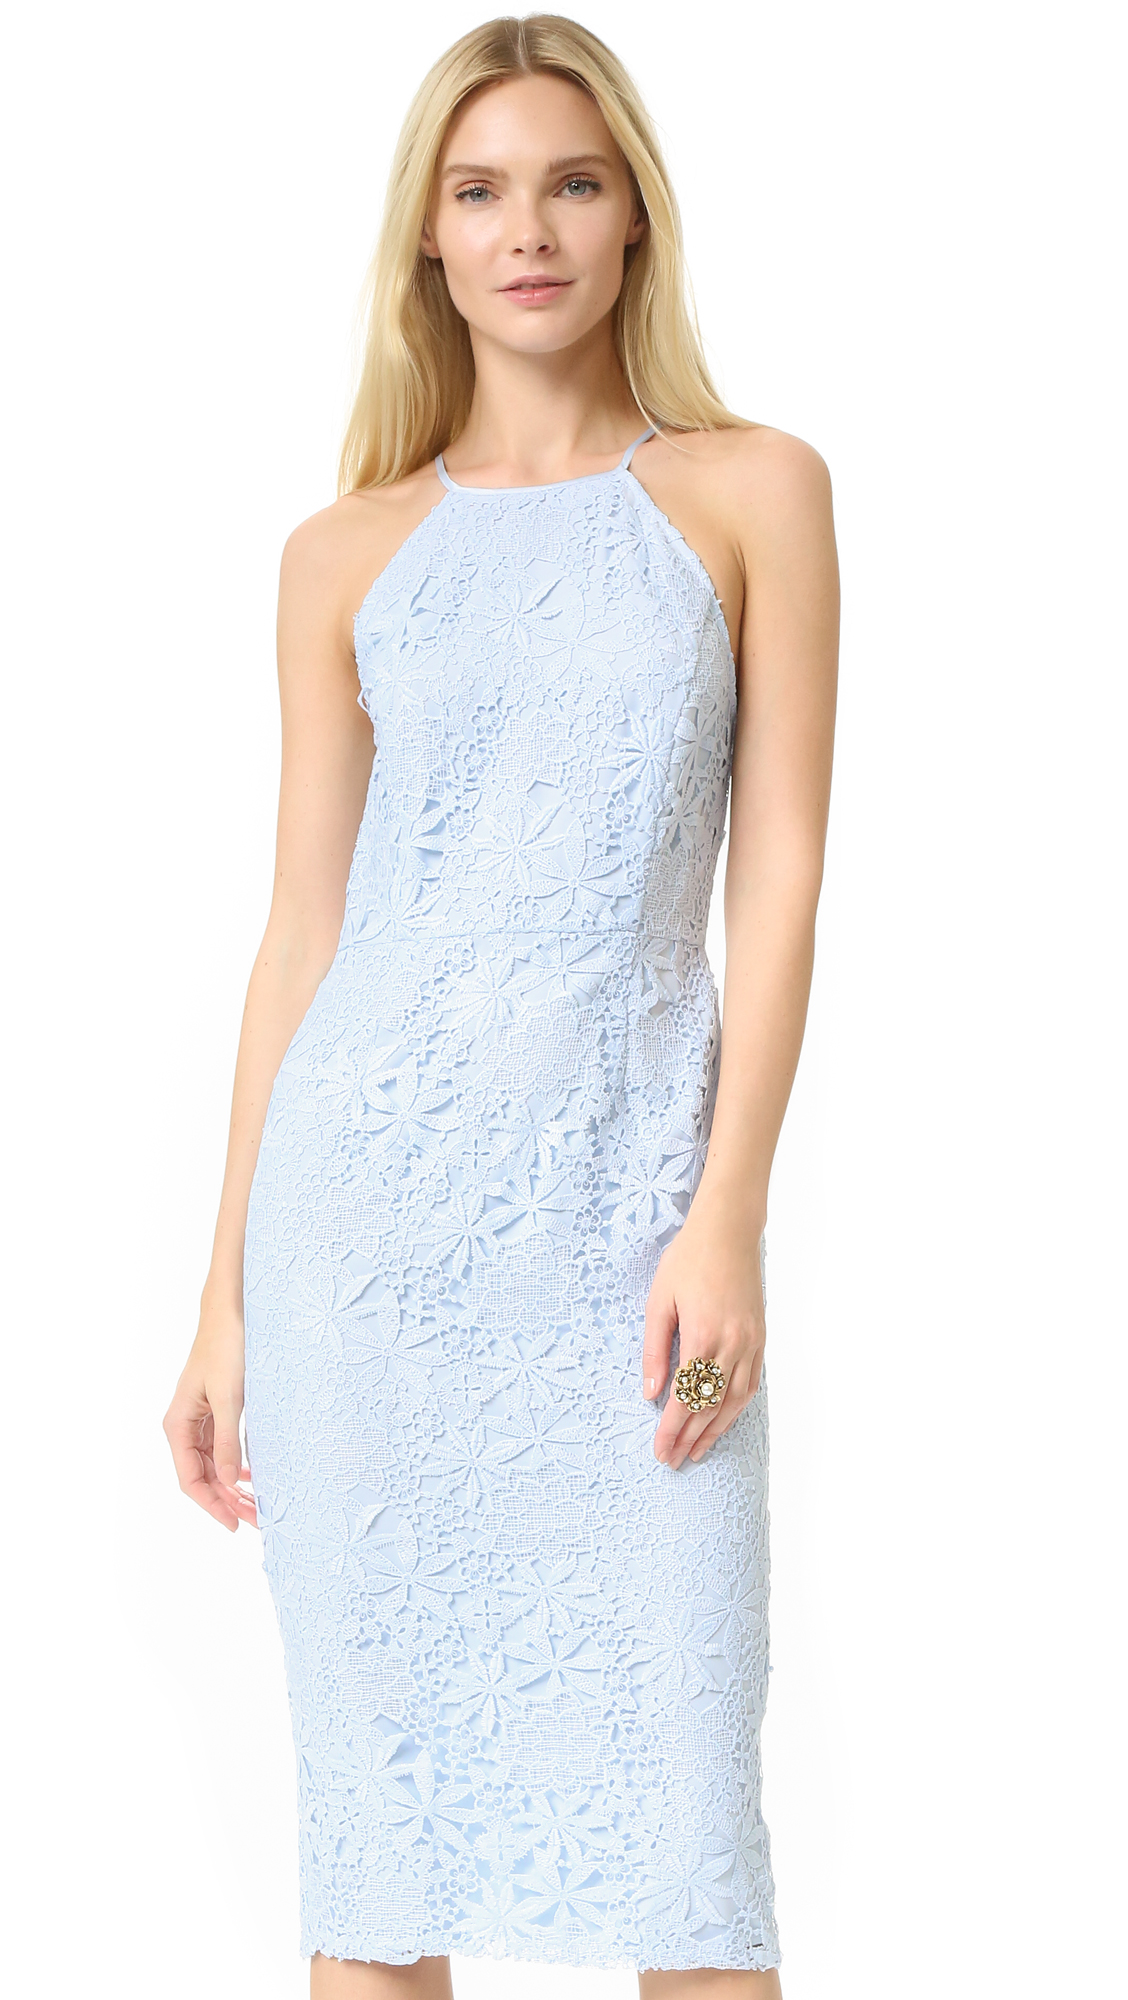 Yumi Kim Save The Date Lace Dress - Baby Blue